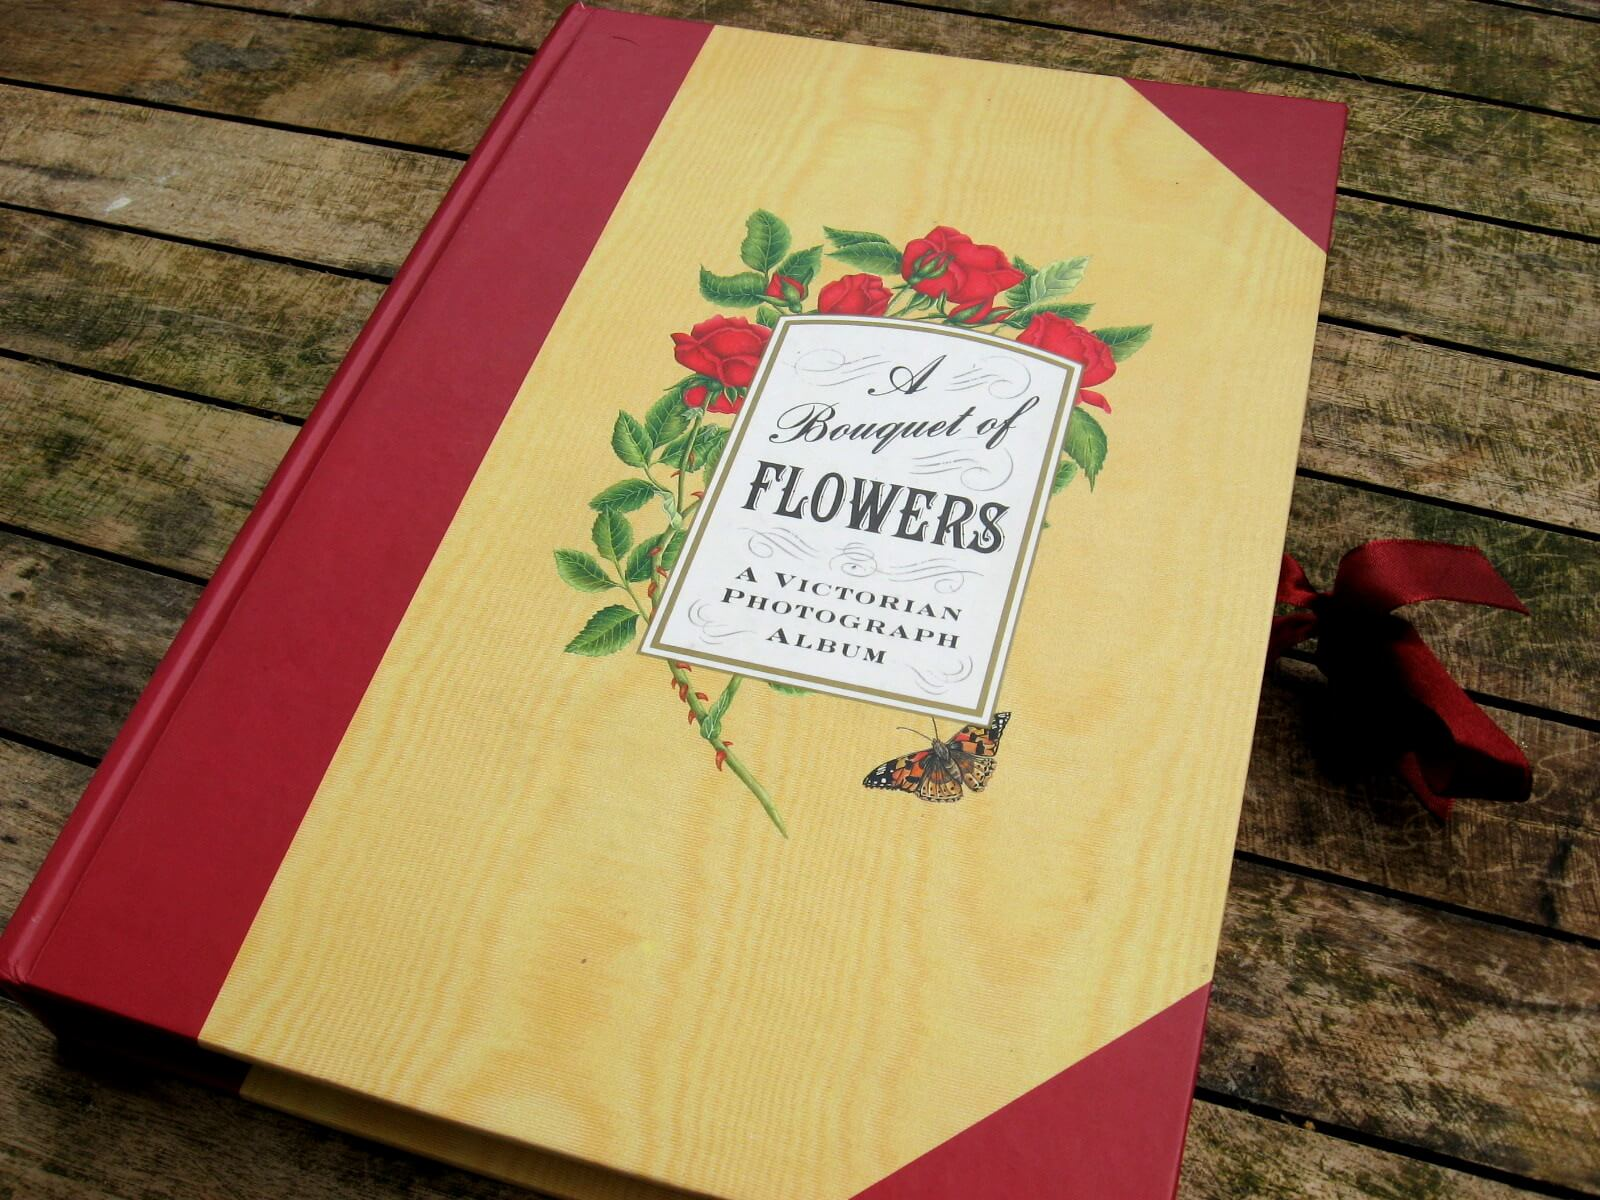 Bouquet of Flowers Photo Album at PumpjackPiddlewick